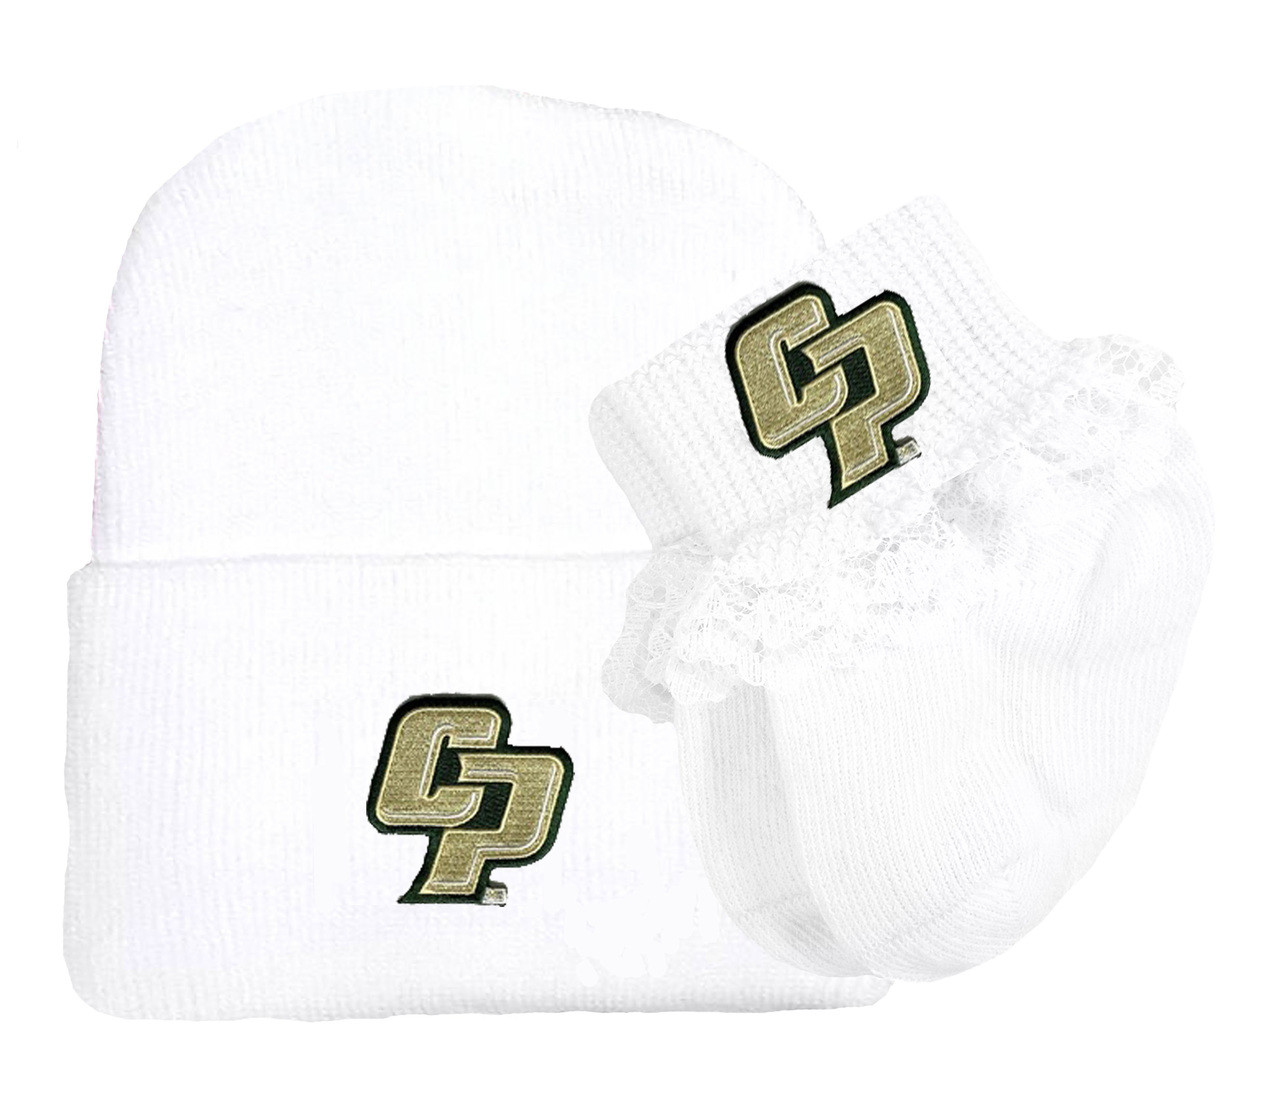 Cal Poly Mustangs Newborn Baby Knit Cap and Socks with Lace Set. Loading  zoom. Cal Poly Mustangs Newborn Baby Knit Cap ... 9781fa557358